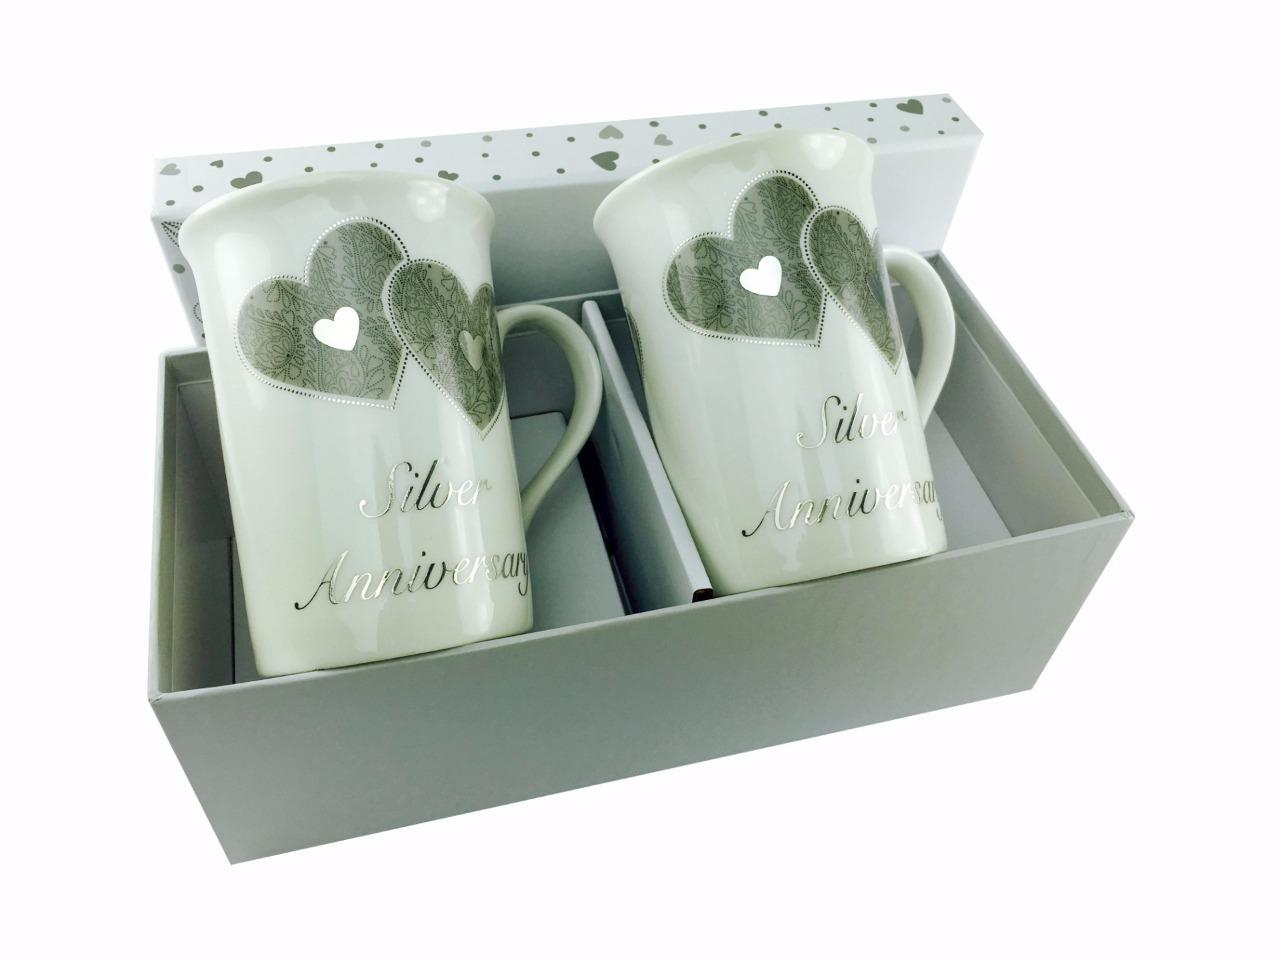 Gift Ideas For Silver Wedding Anniversary: Luxurious 25th Silver Wedding Anniversary Mug Set In Gift